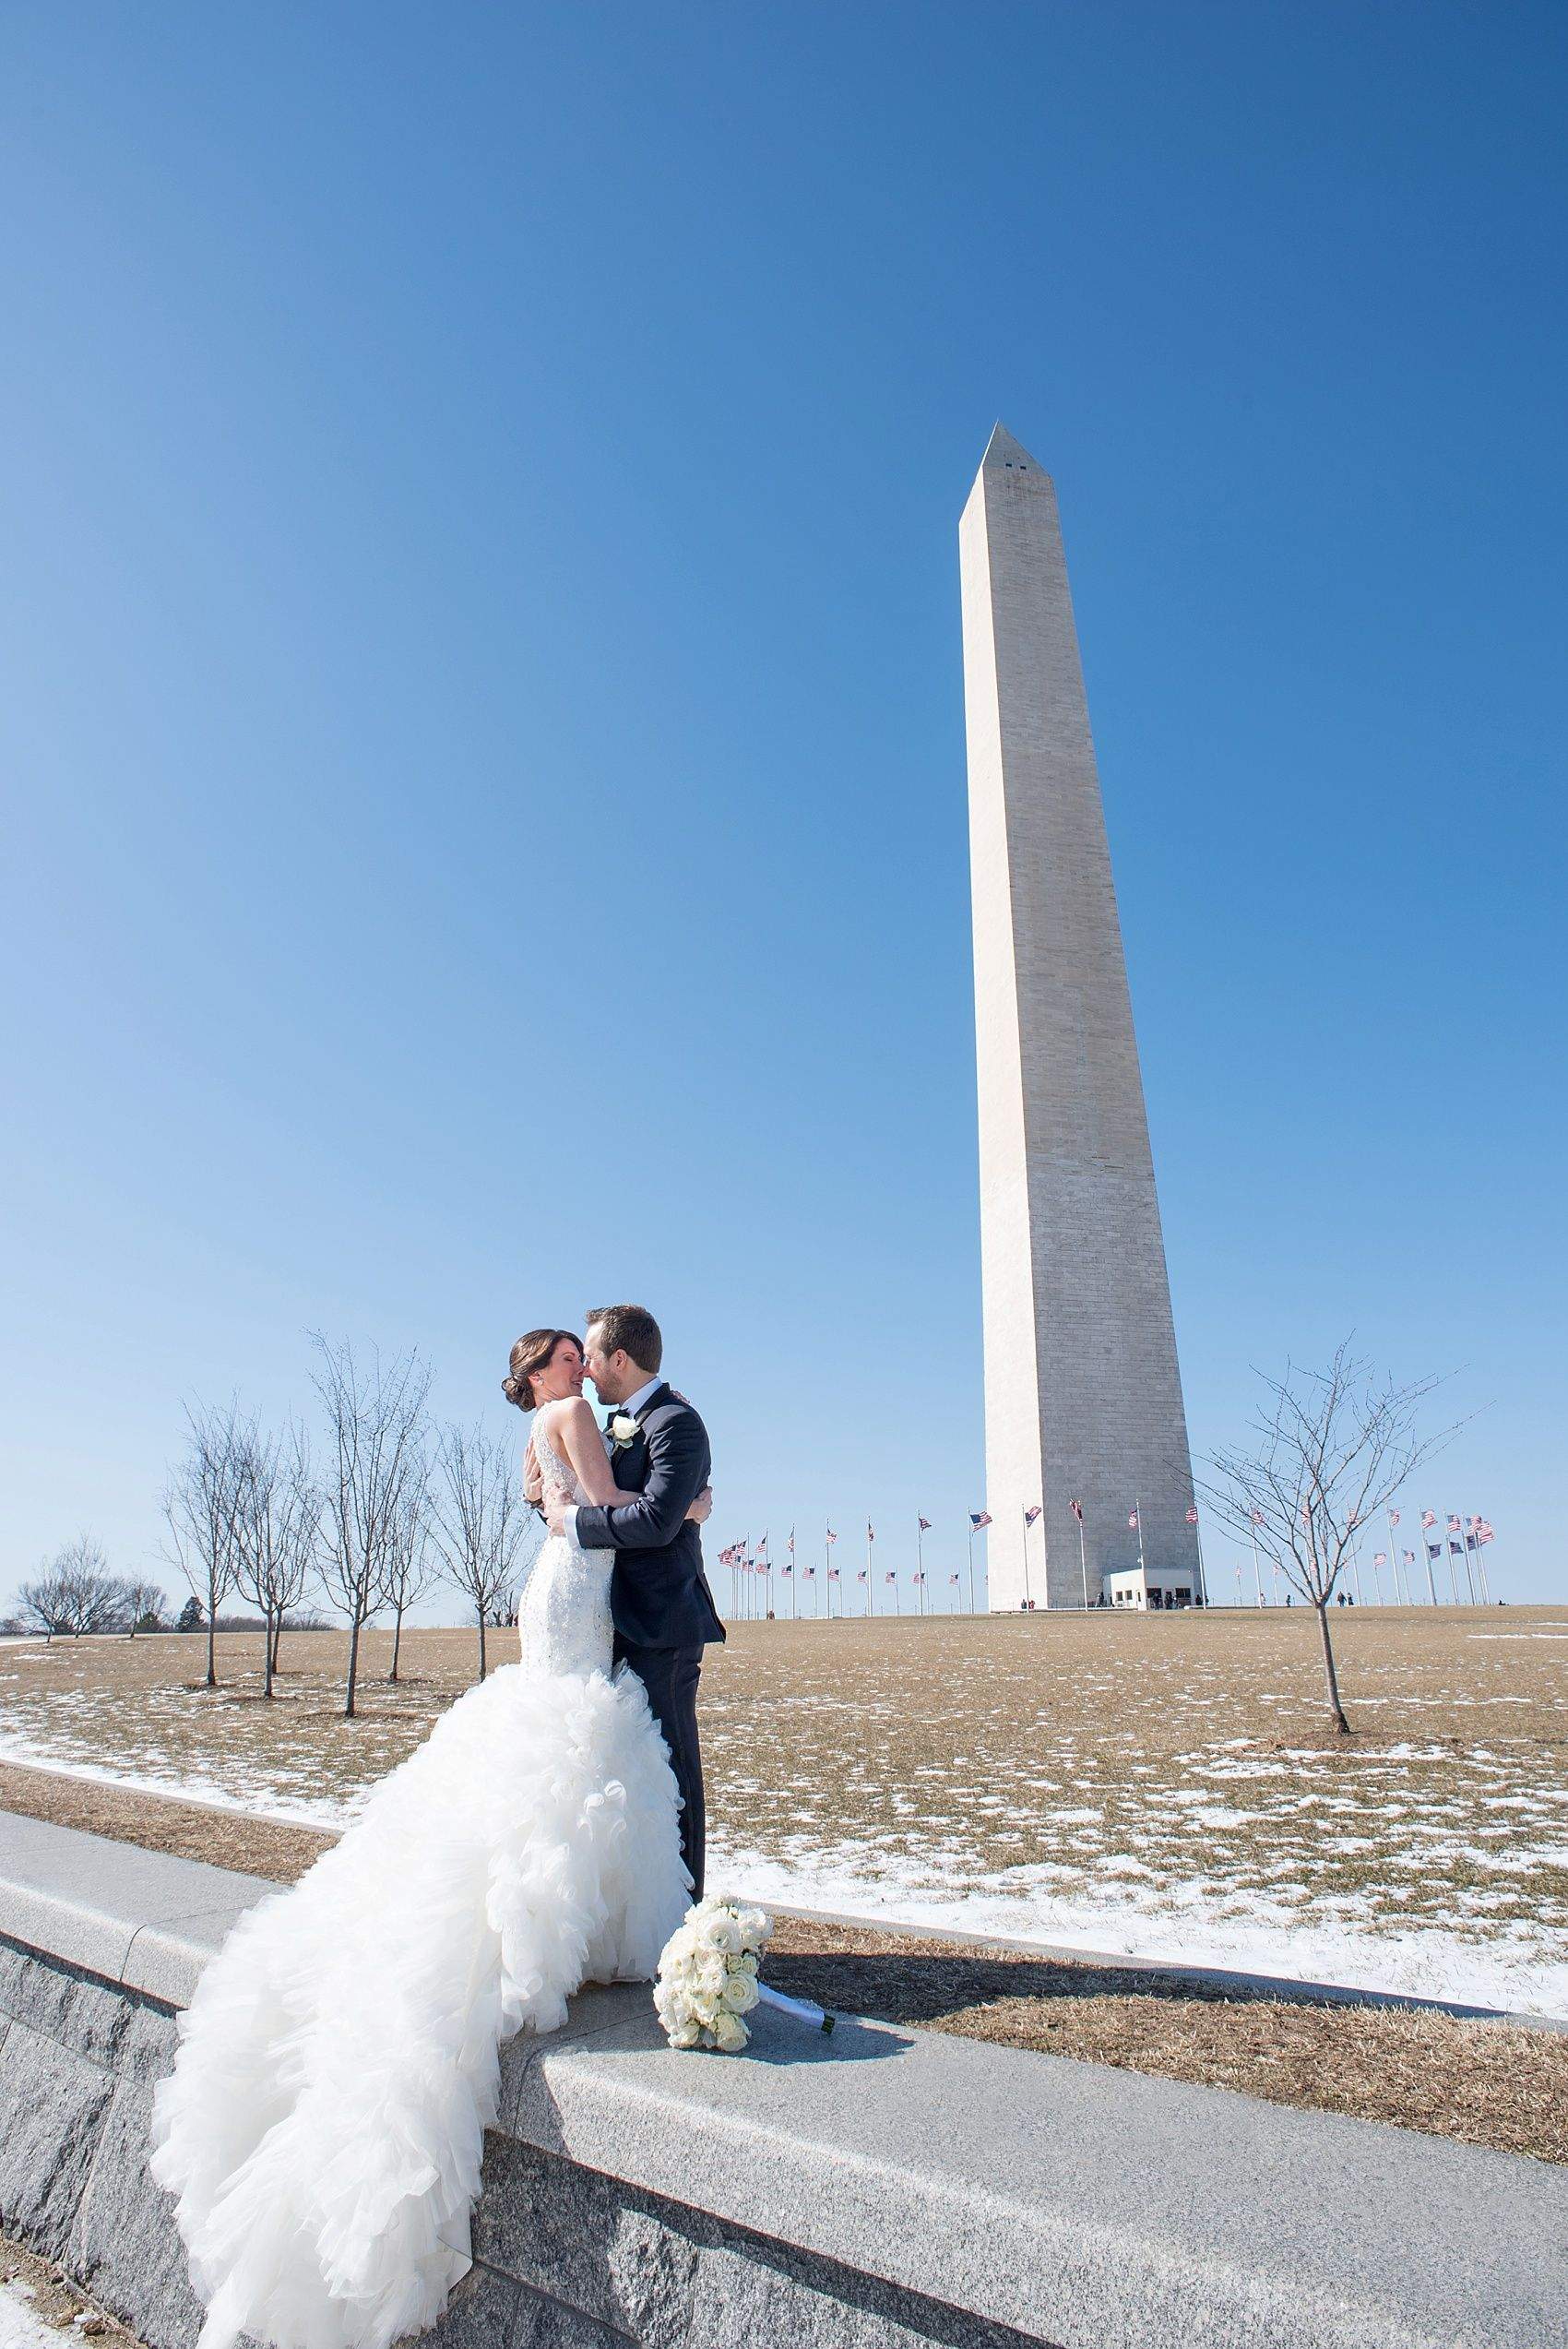 Washington, DC wedding photos by Mikkel Paige. So close to the ...